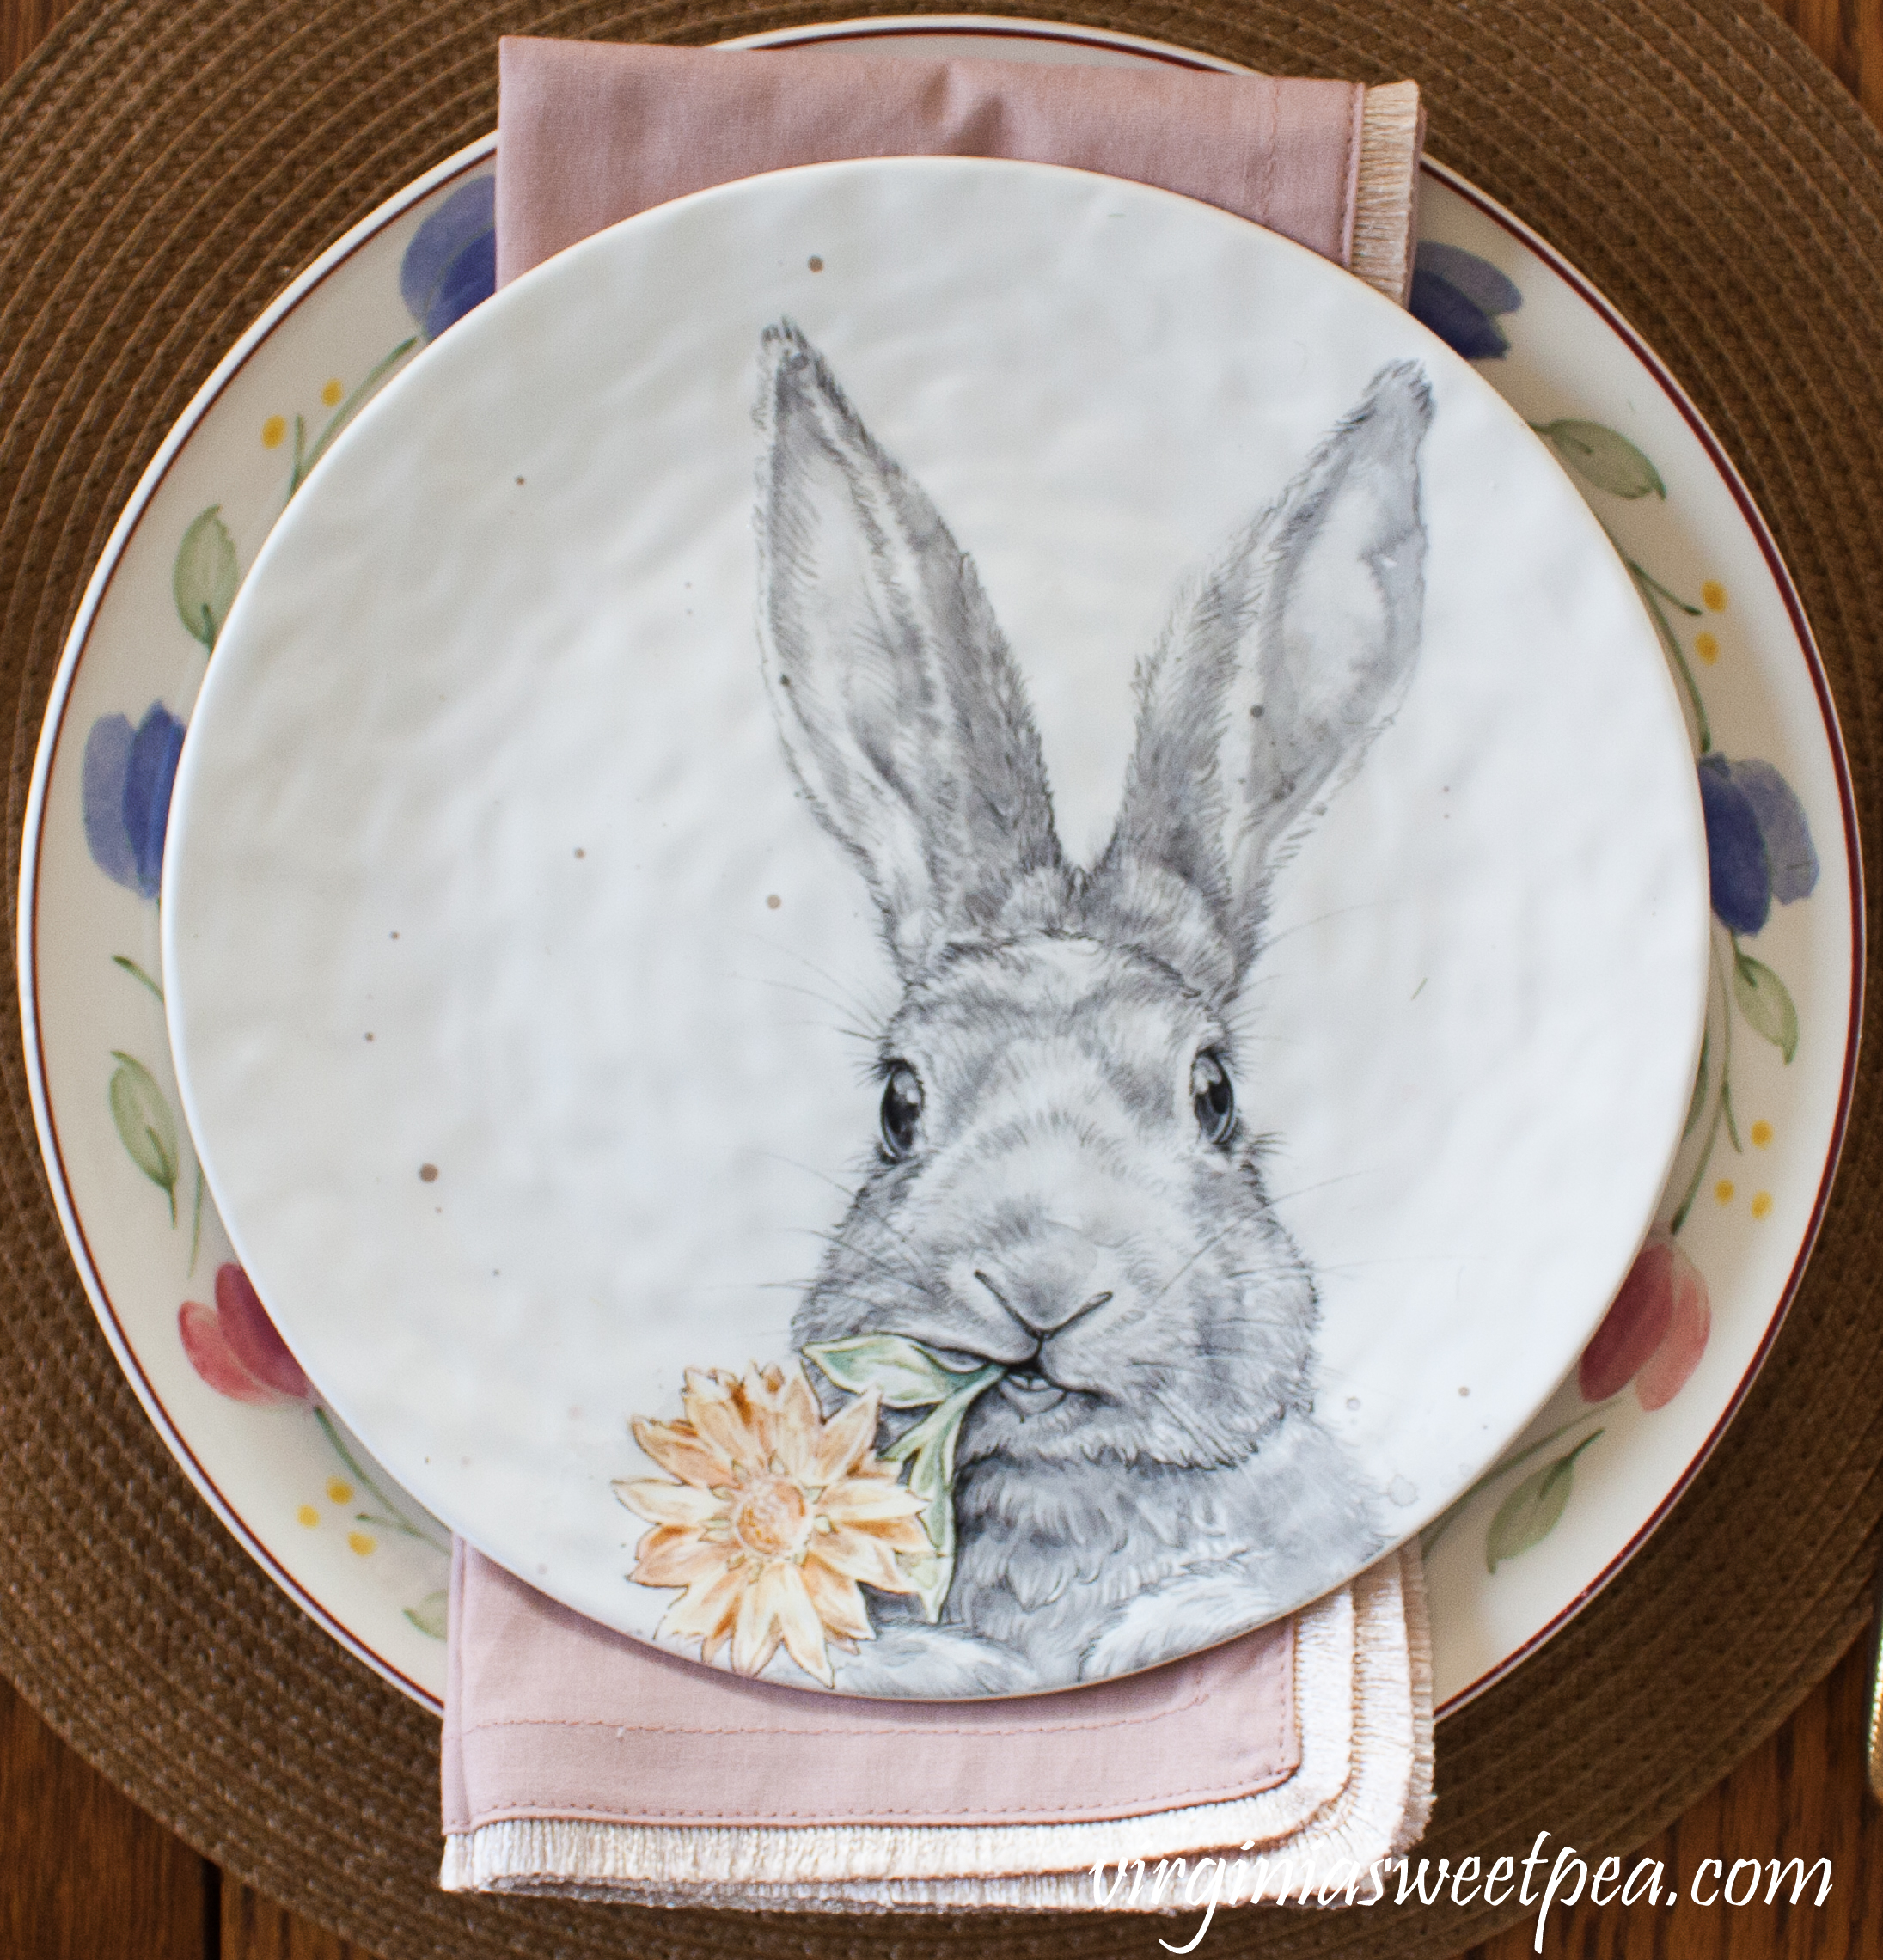 Pier1 Rabbit Salad Plates